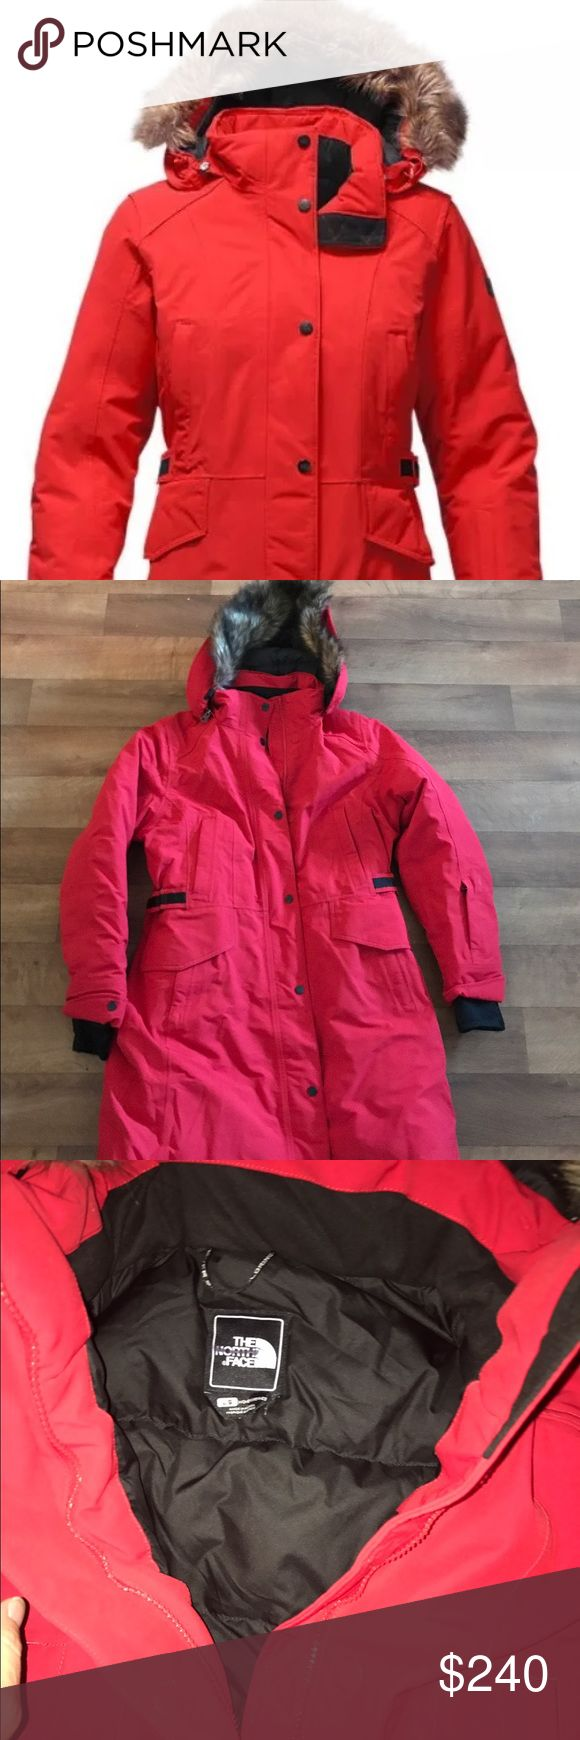 The North Face Tremaya Parka Jacket L Size large The North Face Tremaya Parka mark through inside label 100% Authentic 🚫no trades🚫 Jackets & Coats